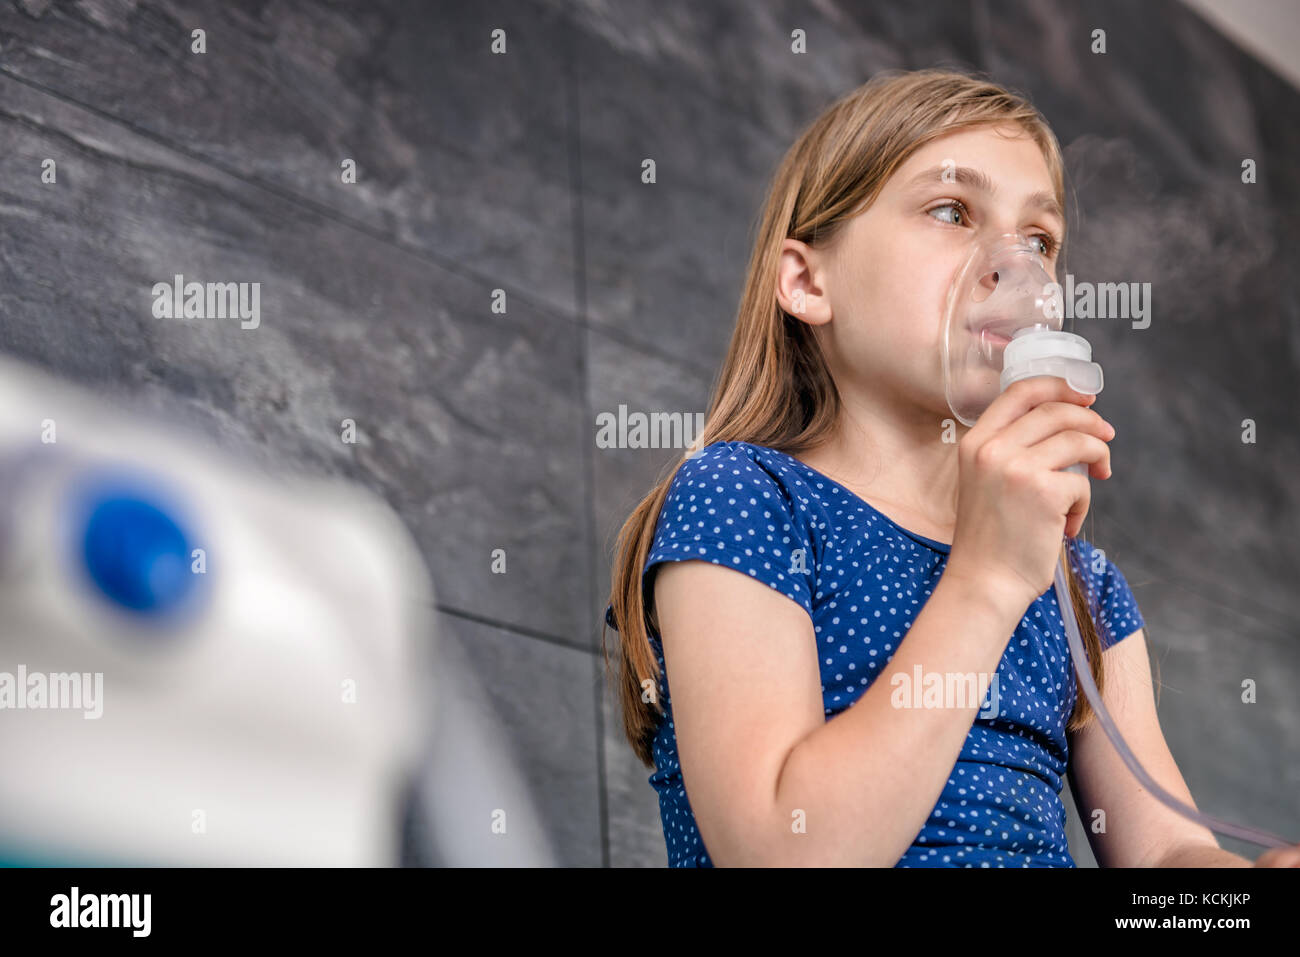 Little girl having a medical inhalation treatment with a nebulizer at the hospital - Stock Image